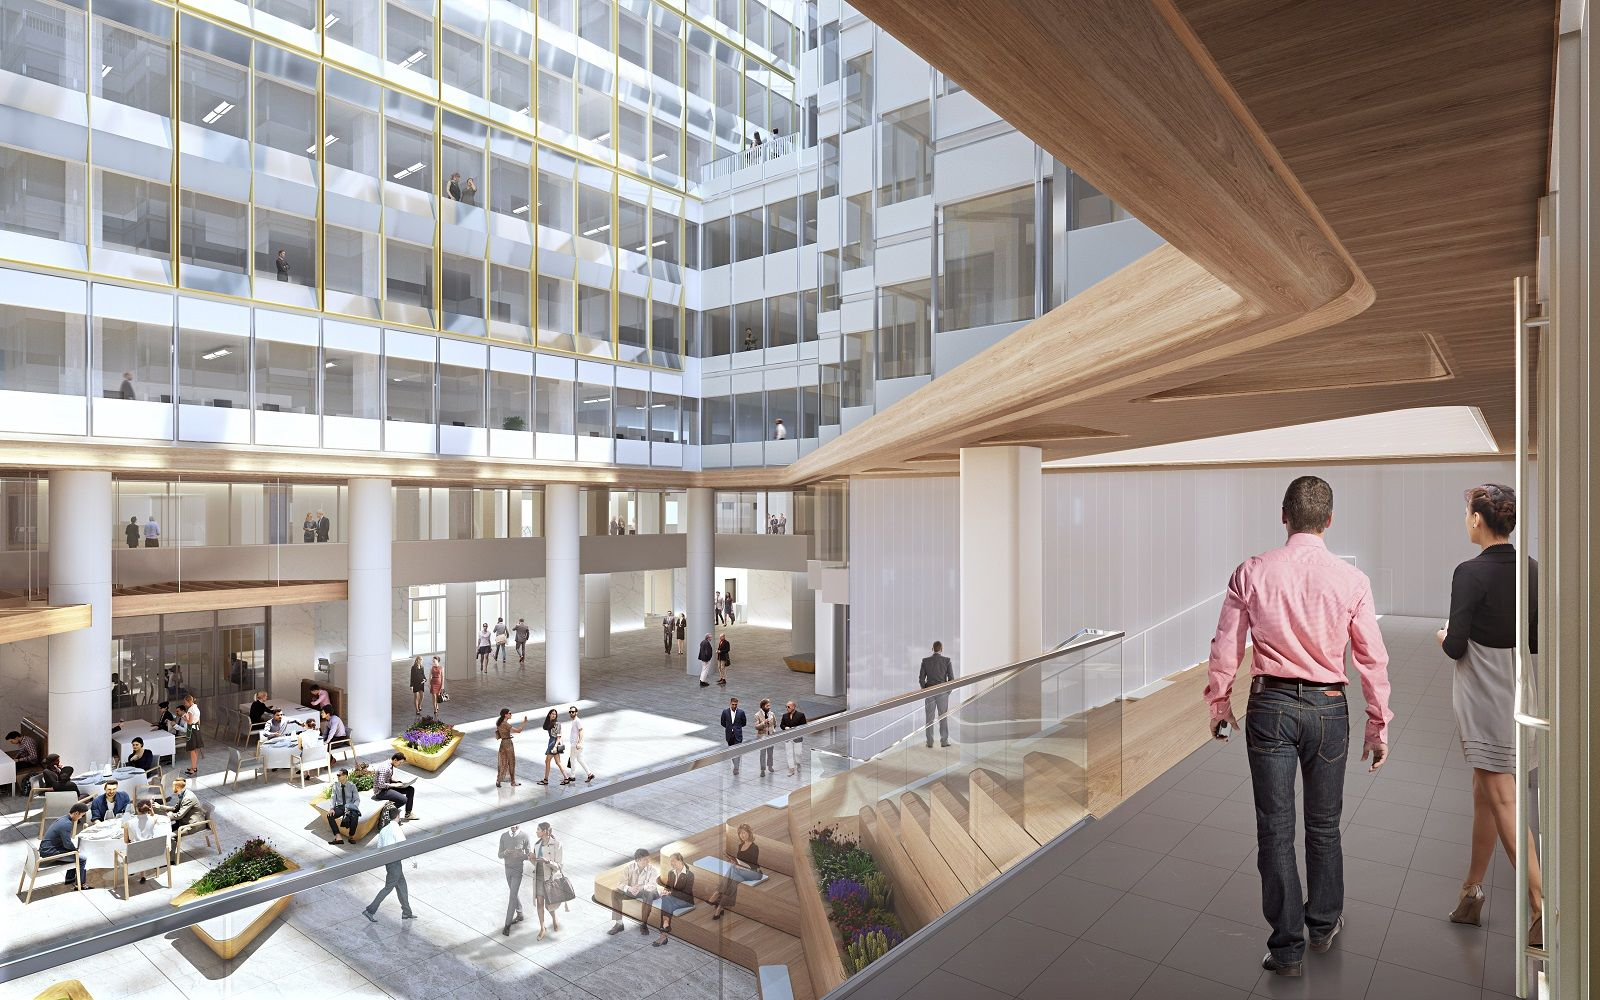 The 670,000-square-foot building will get a new lobby and atrium glass, new common areas, a fitness center, an expansive tenant lounge, a new conference facility, private event spaces, and an expansive rooftop terrace. (Courtesy of Newmark Knight Frank)